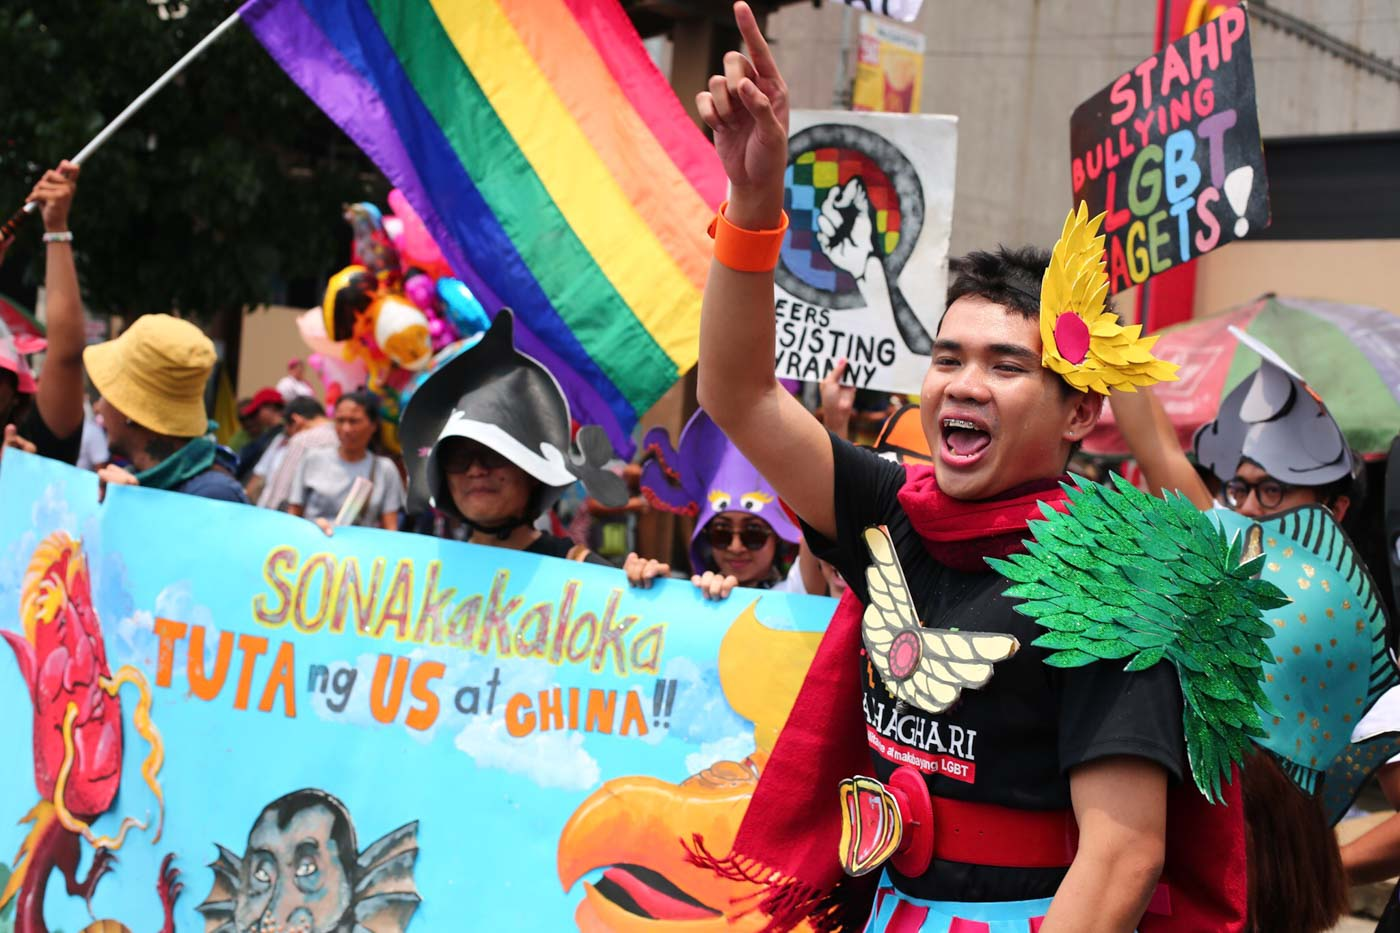 SONAKAKALOKA. Bahaghari is one of the groups that joined the United People's SONA on July 22, 2019. Photo by Jire Carreon/Rappler